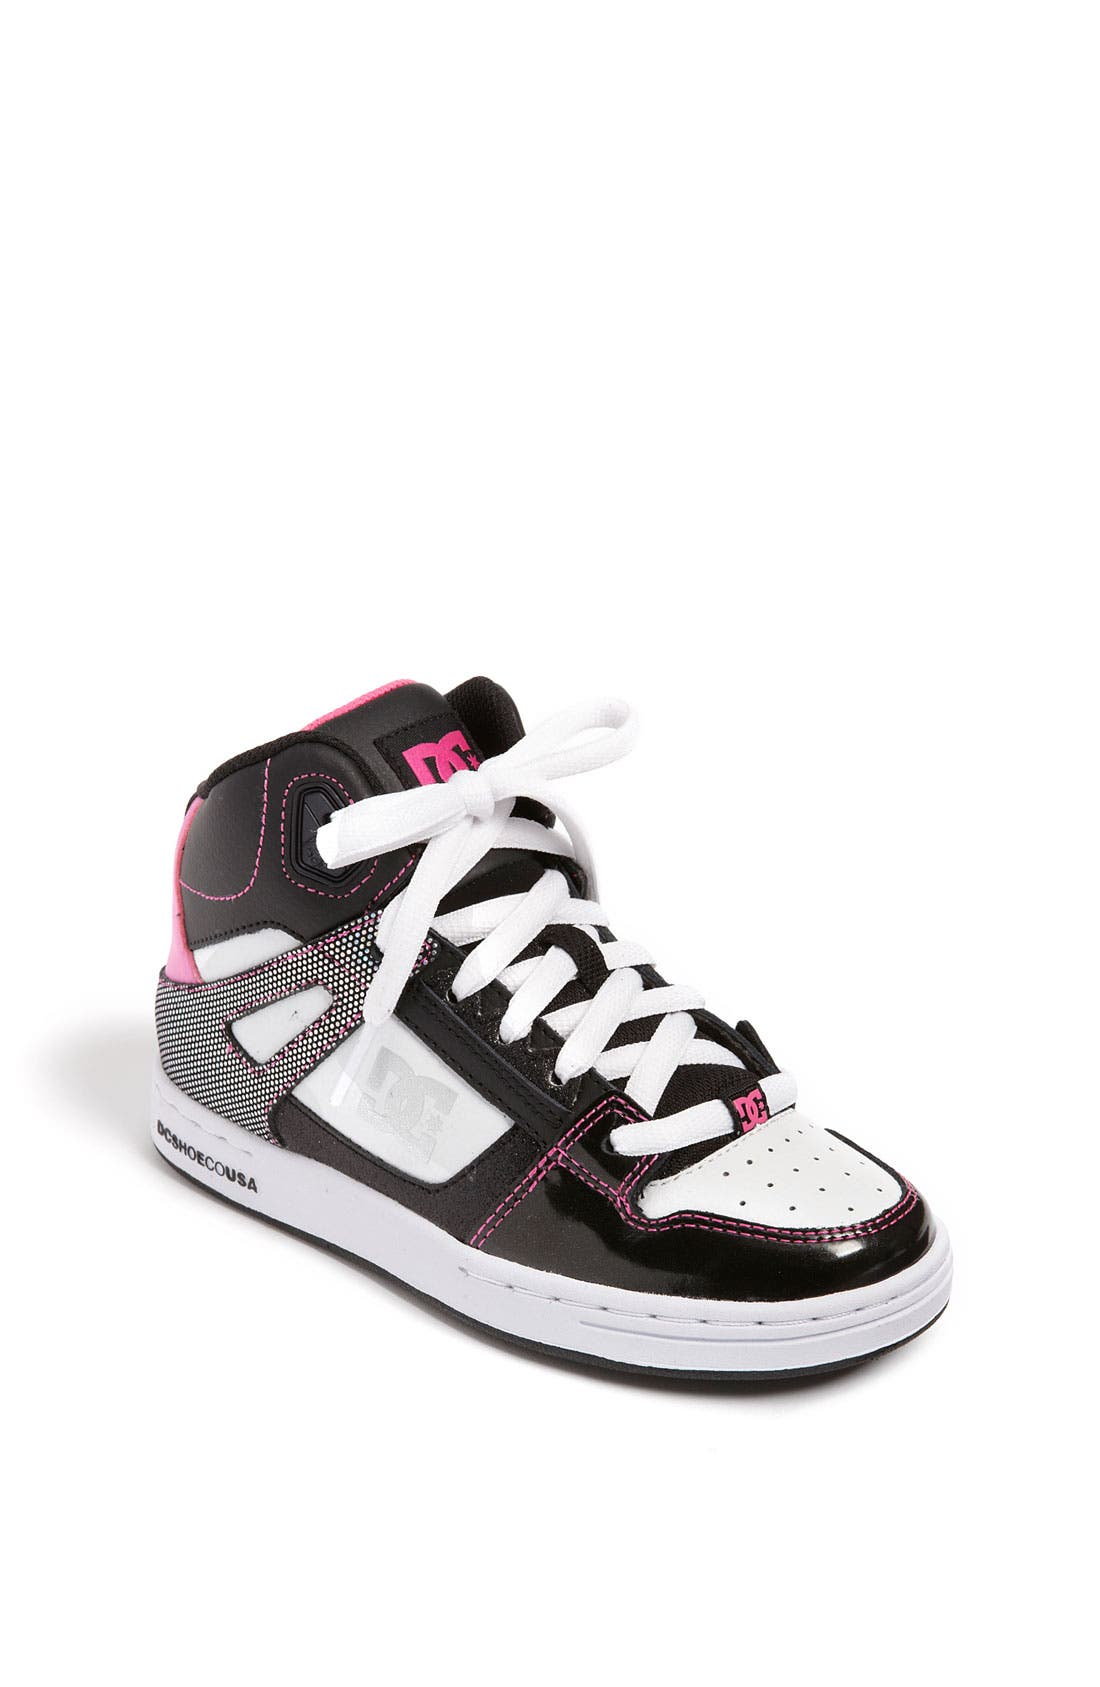 Alternate Image 1 Selected - DC Shoes 'Rebound' Skate Shoe (Little Kid & Big Kid)